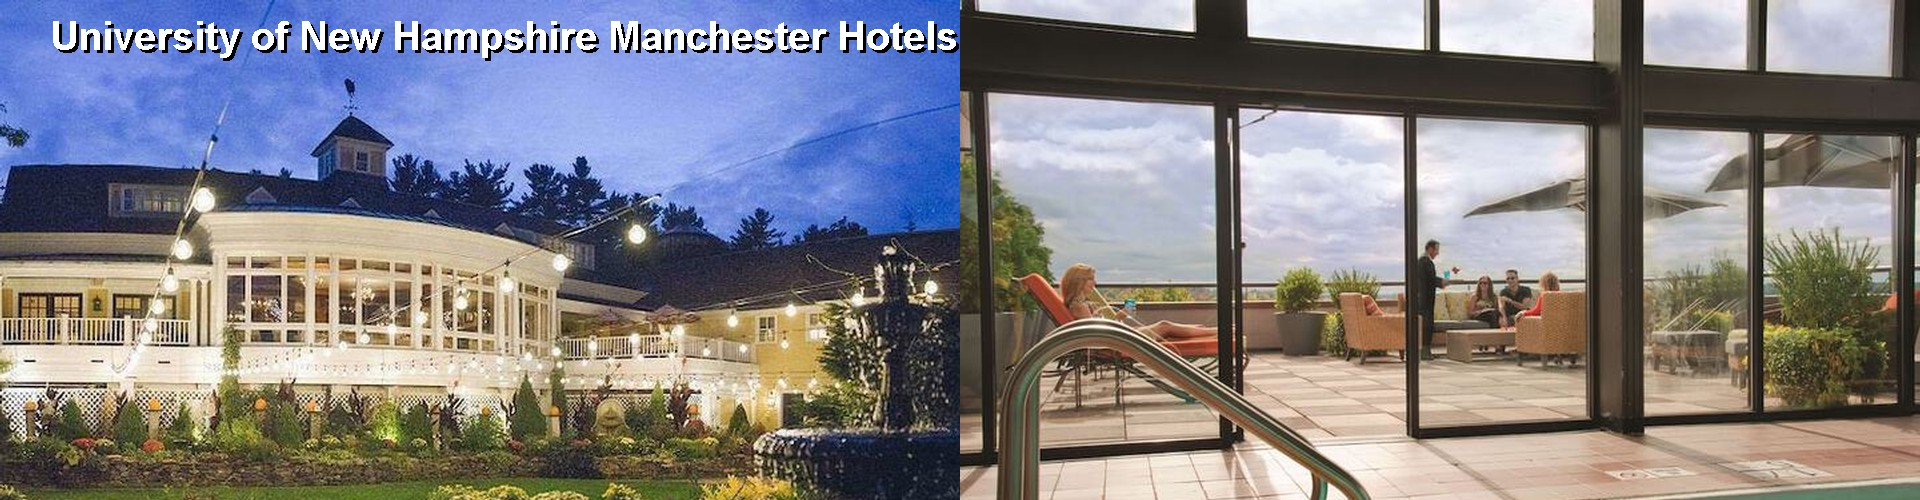 5 Best Hotels near University of New Hampshire Manchester